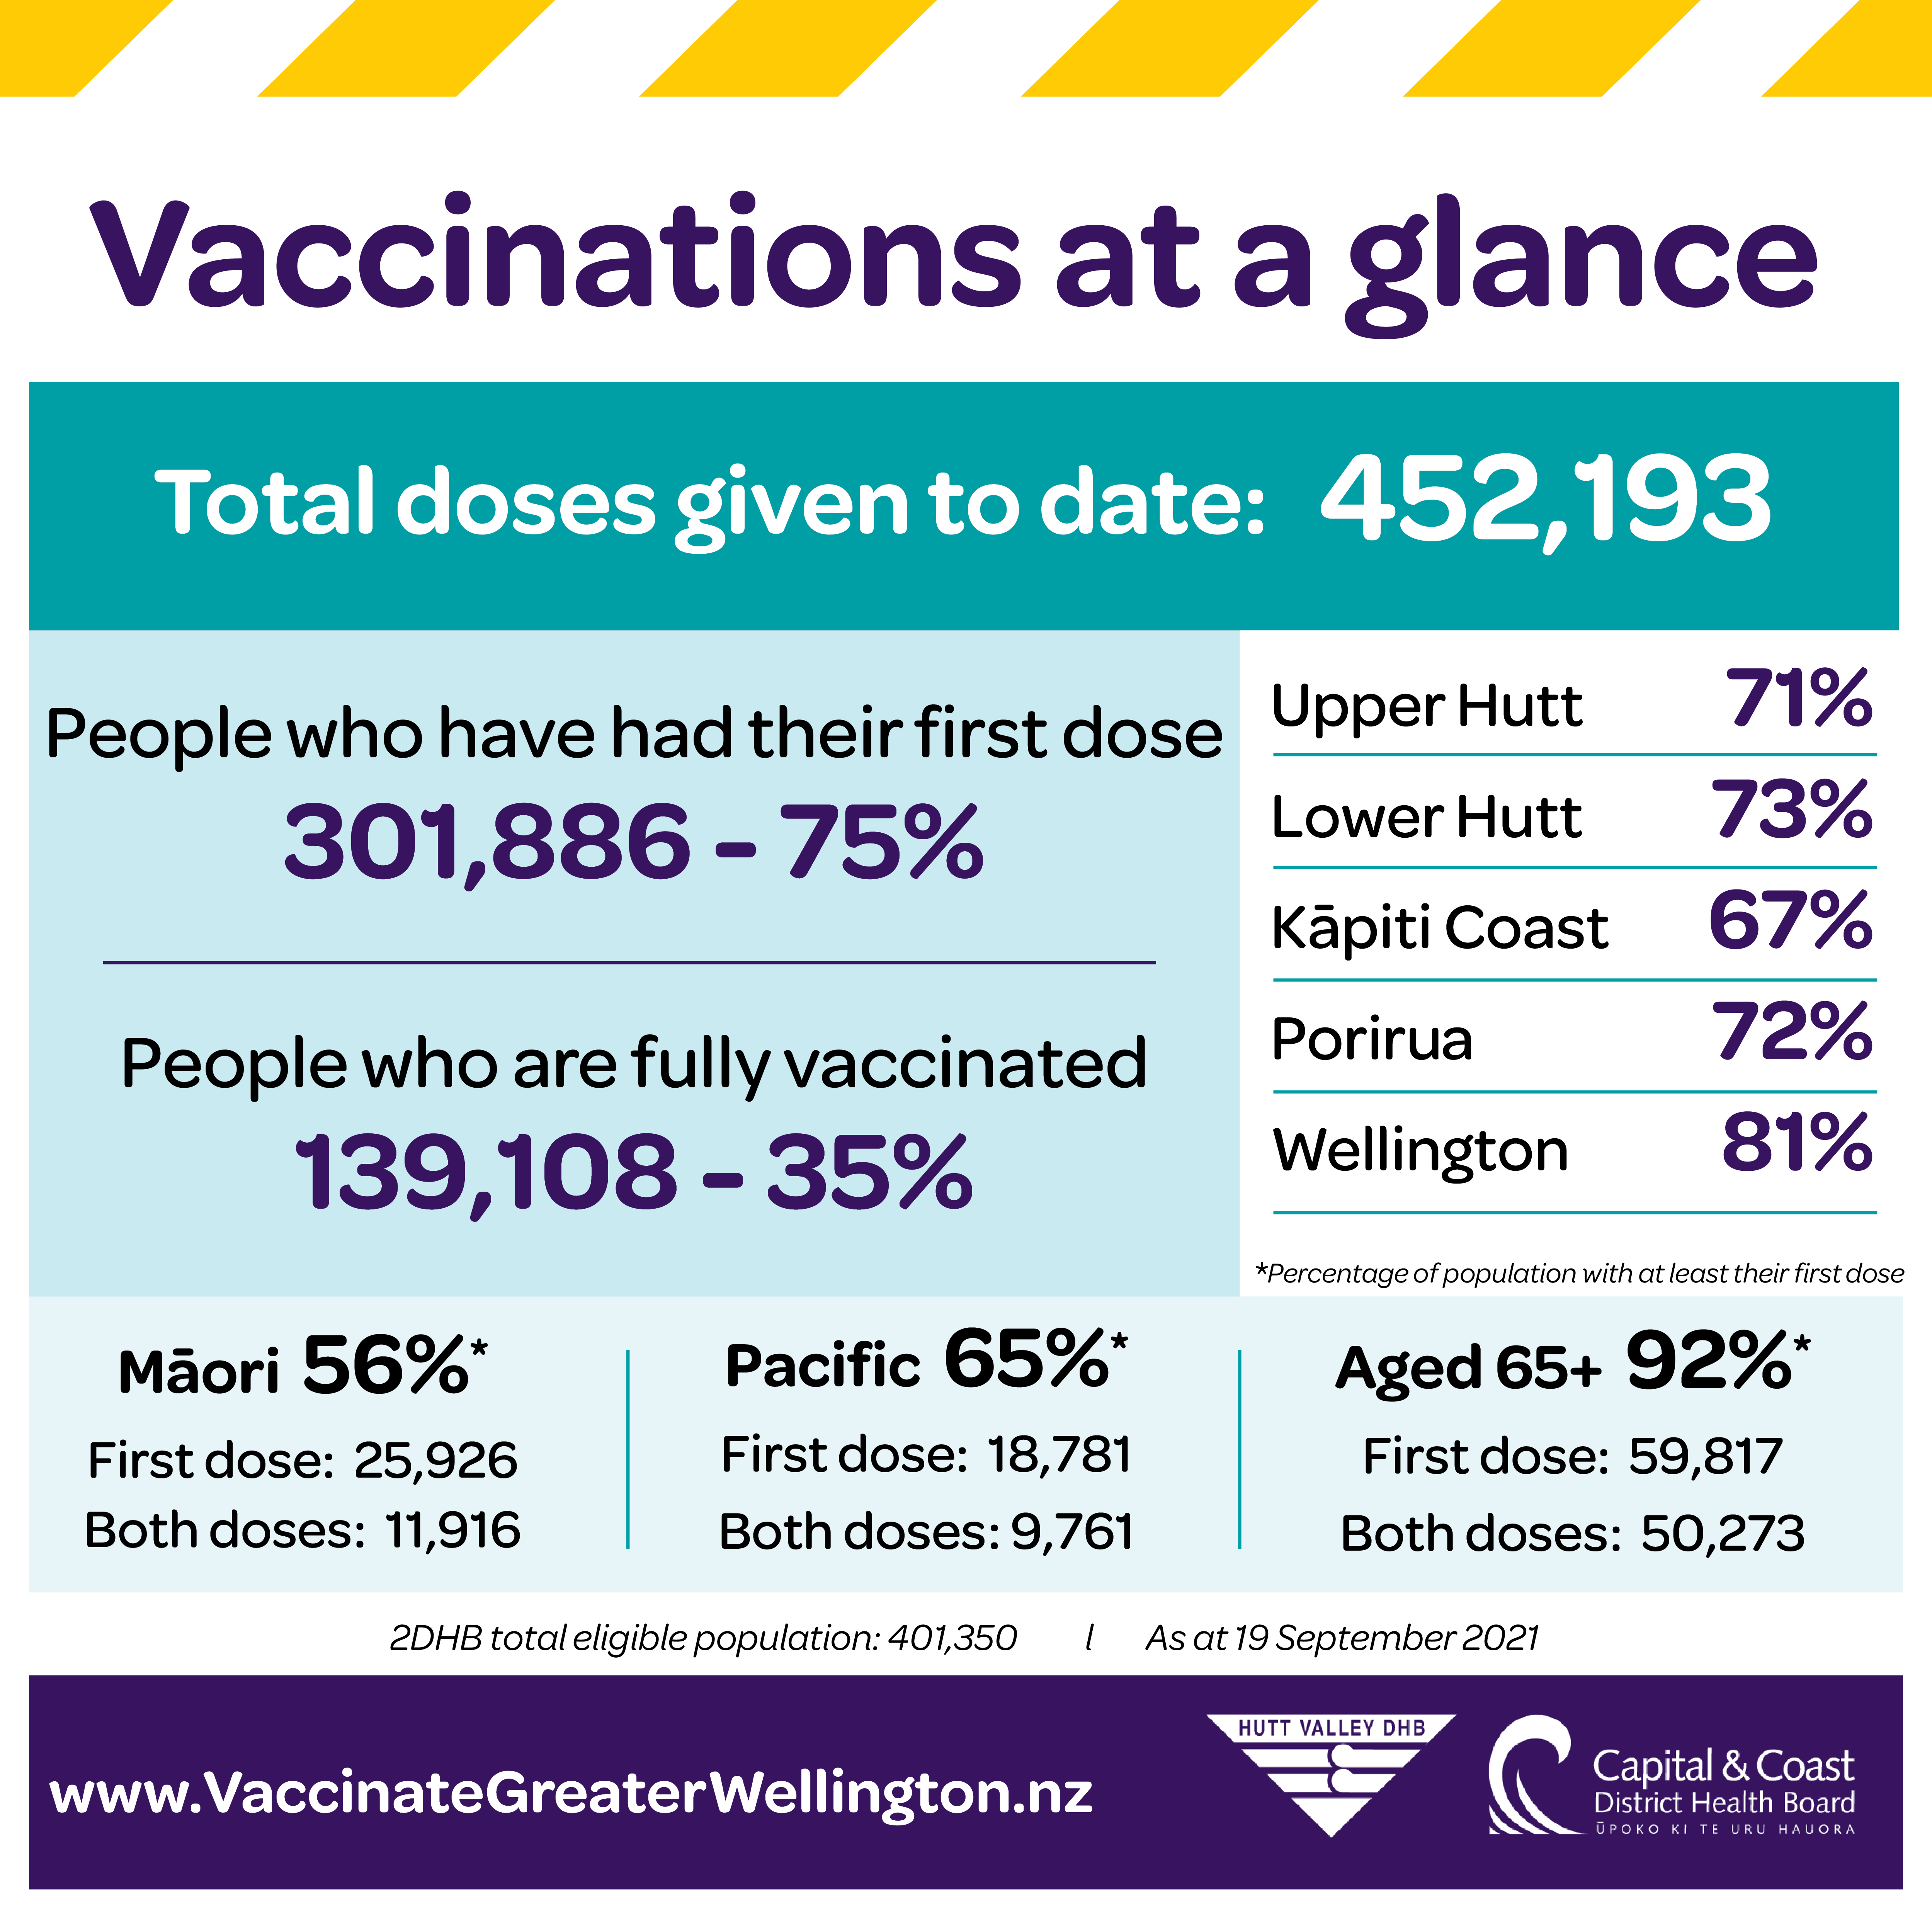 Vaccinations as at 19 sept in 2DHB area: 75% of people have had at least their first dose.